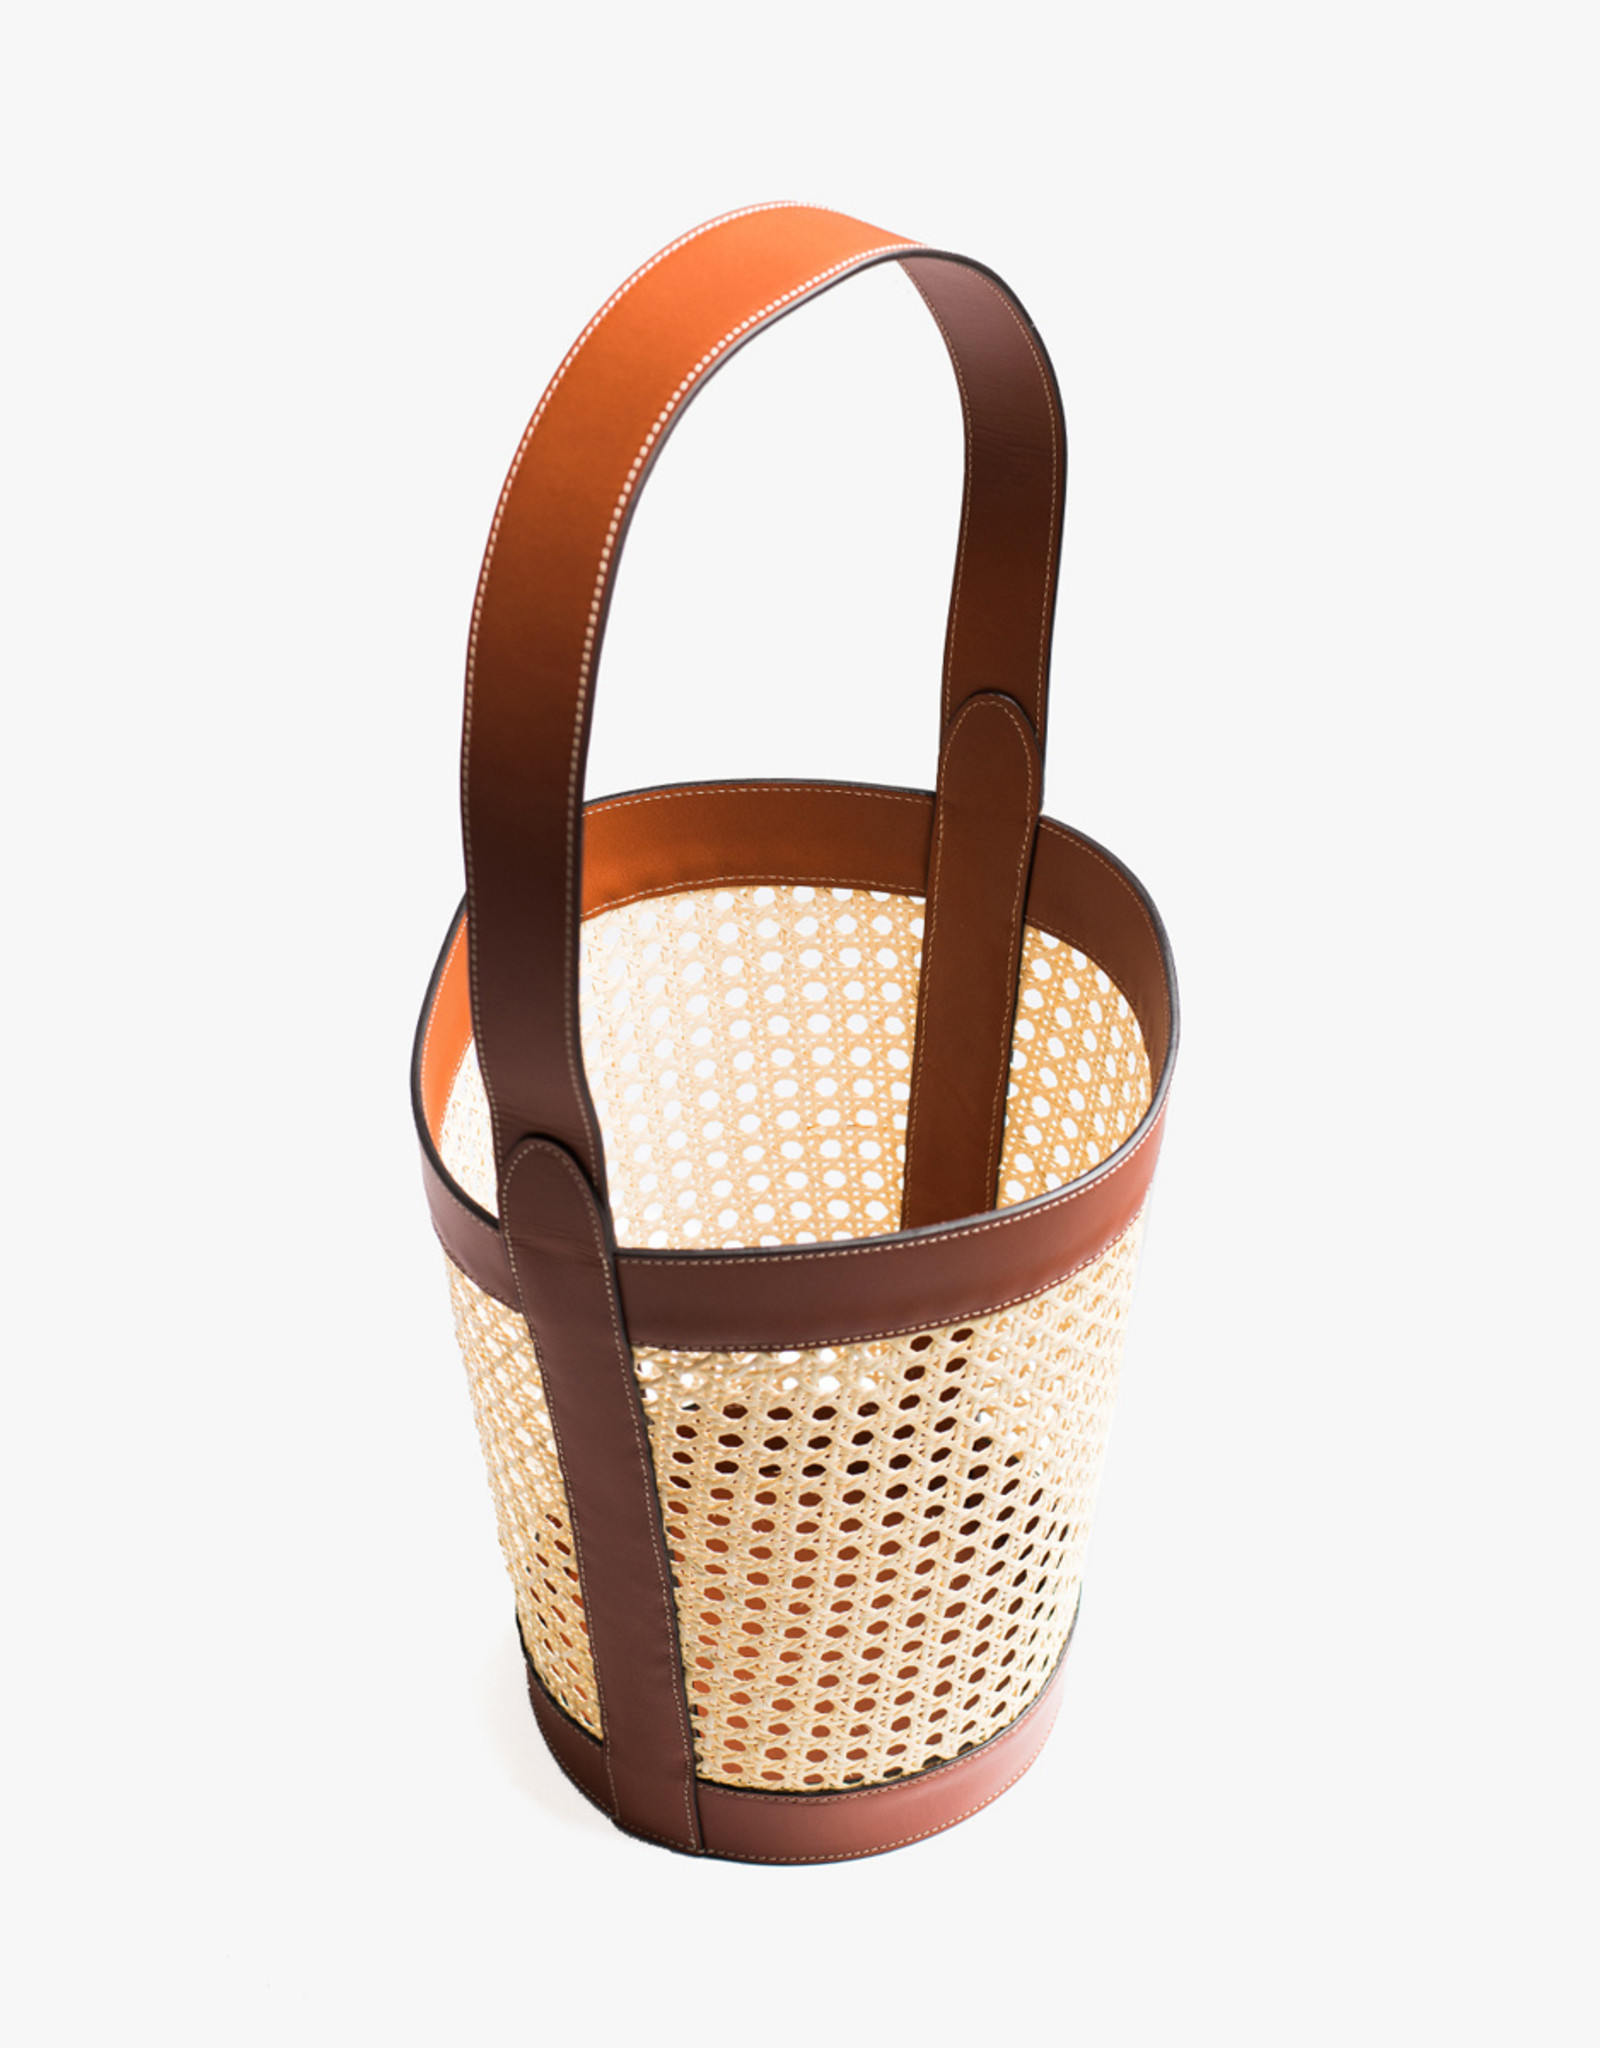 Rattan Bucket Bag by Palmgrens | Cognac leather